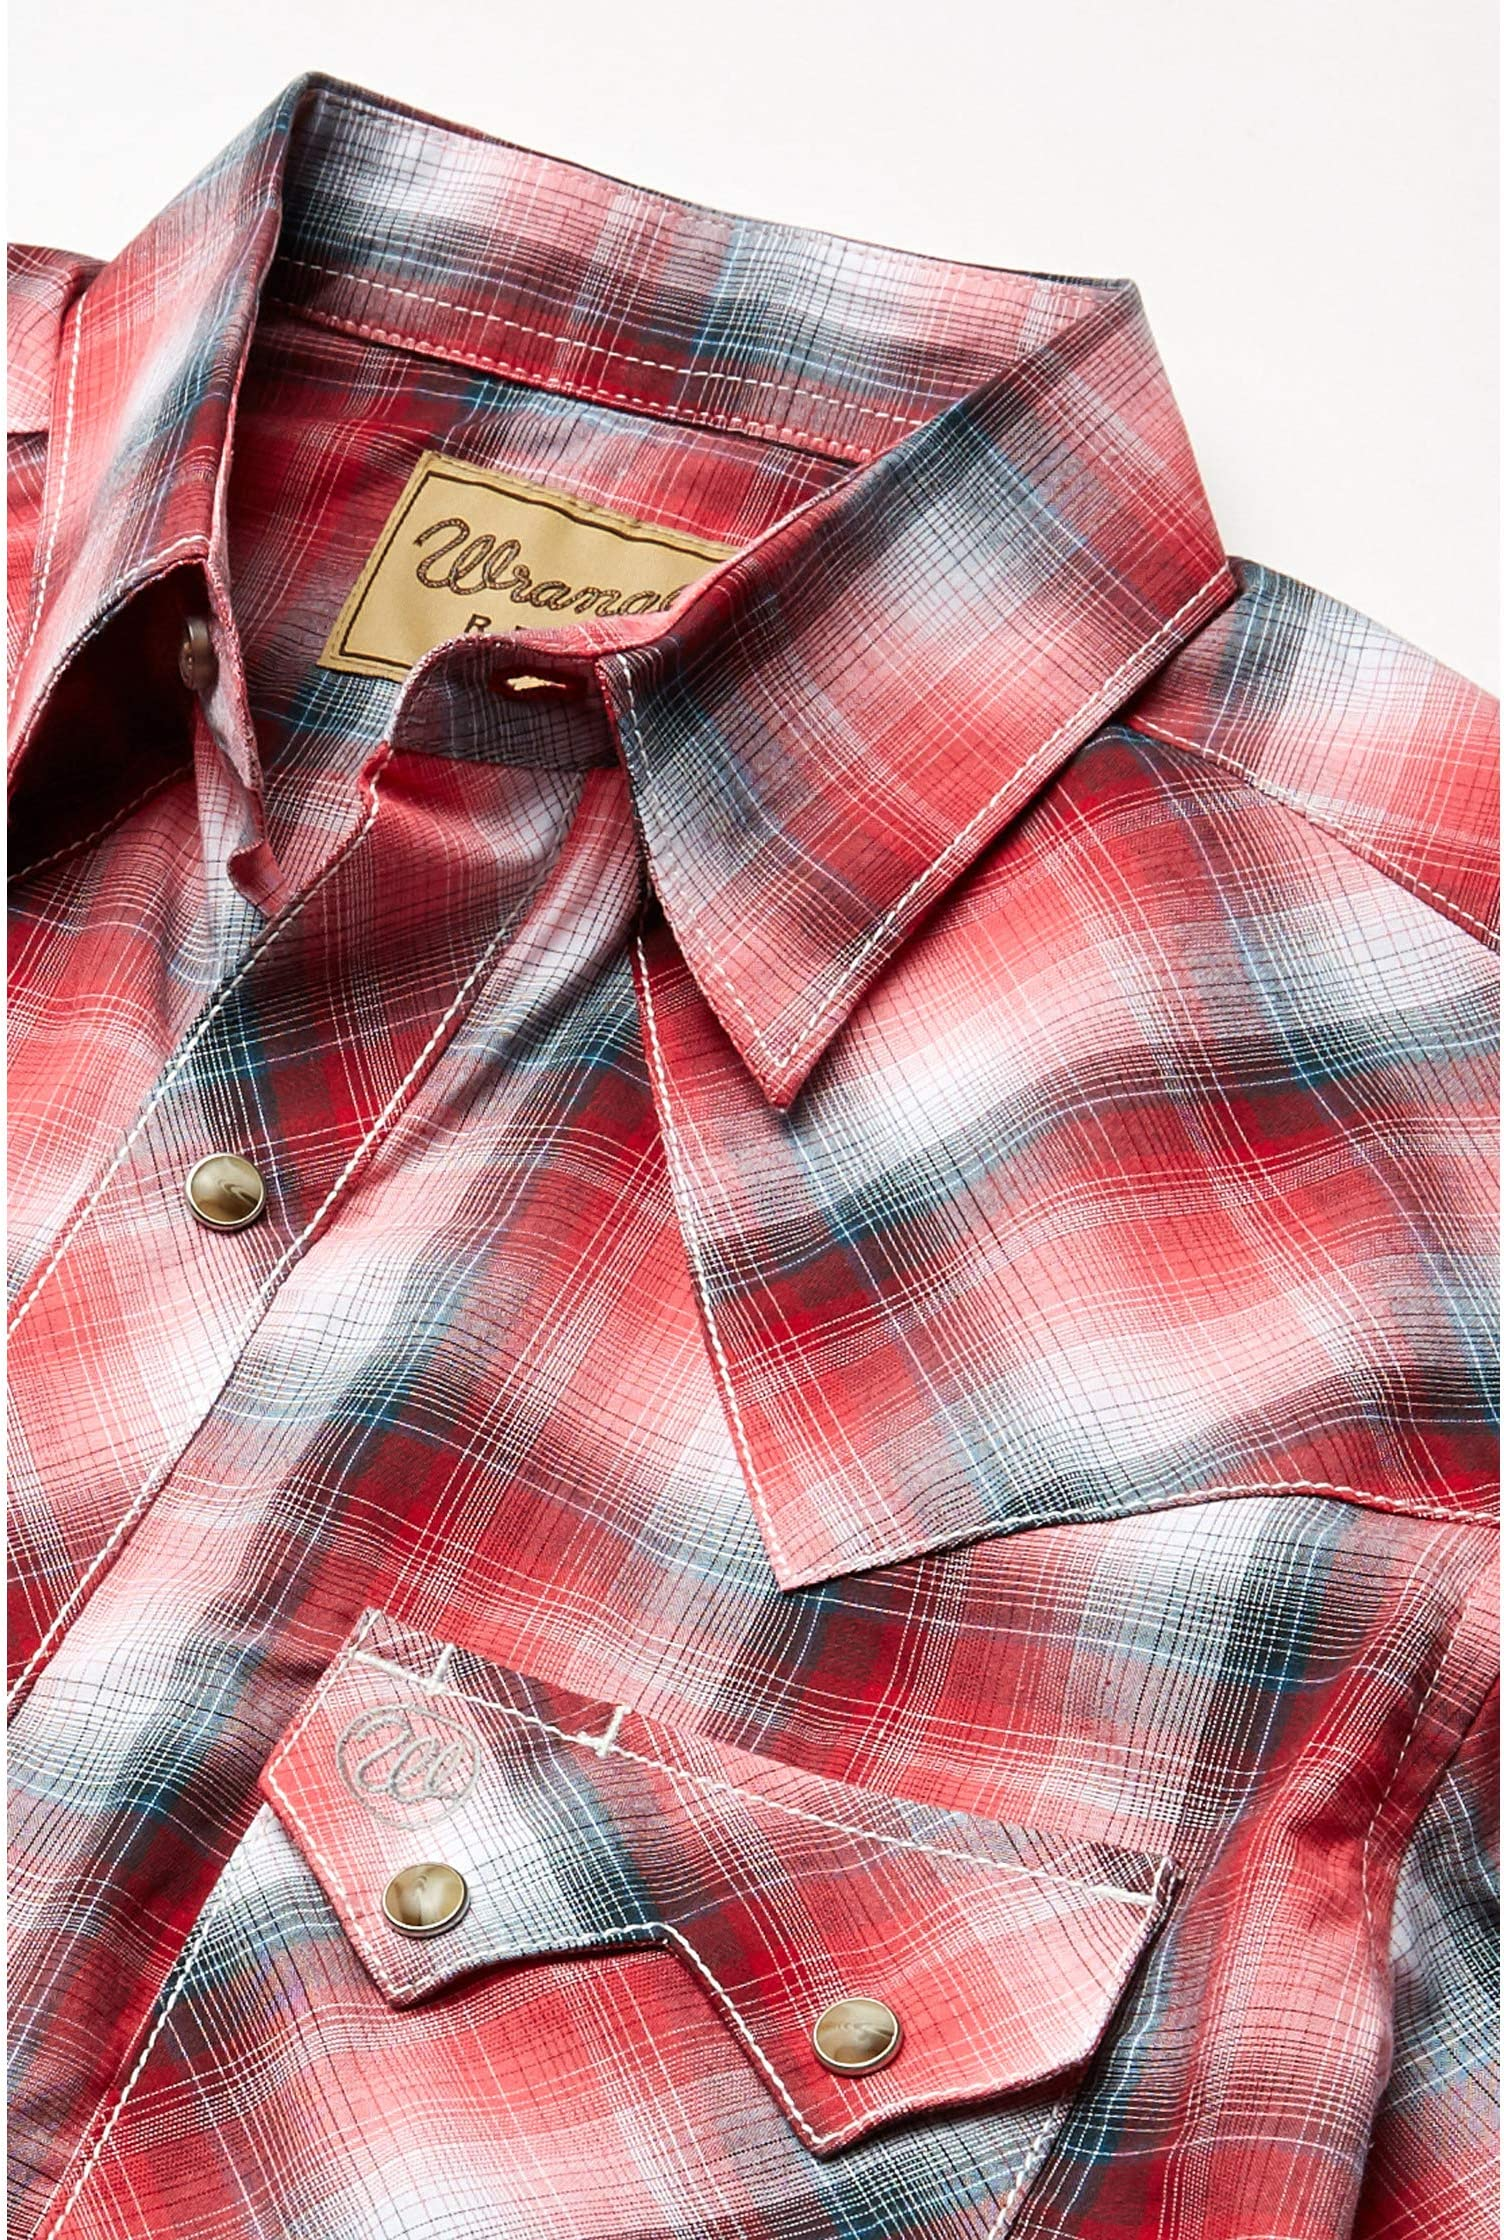 Wrangler Retro Short Sleeve Plaid Two-Pocket Snap pv7ky